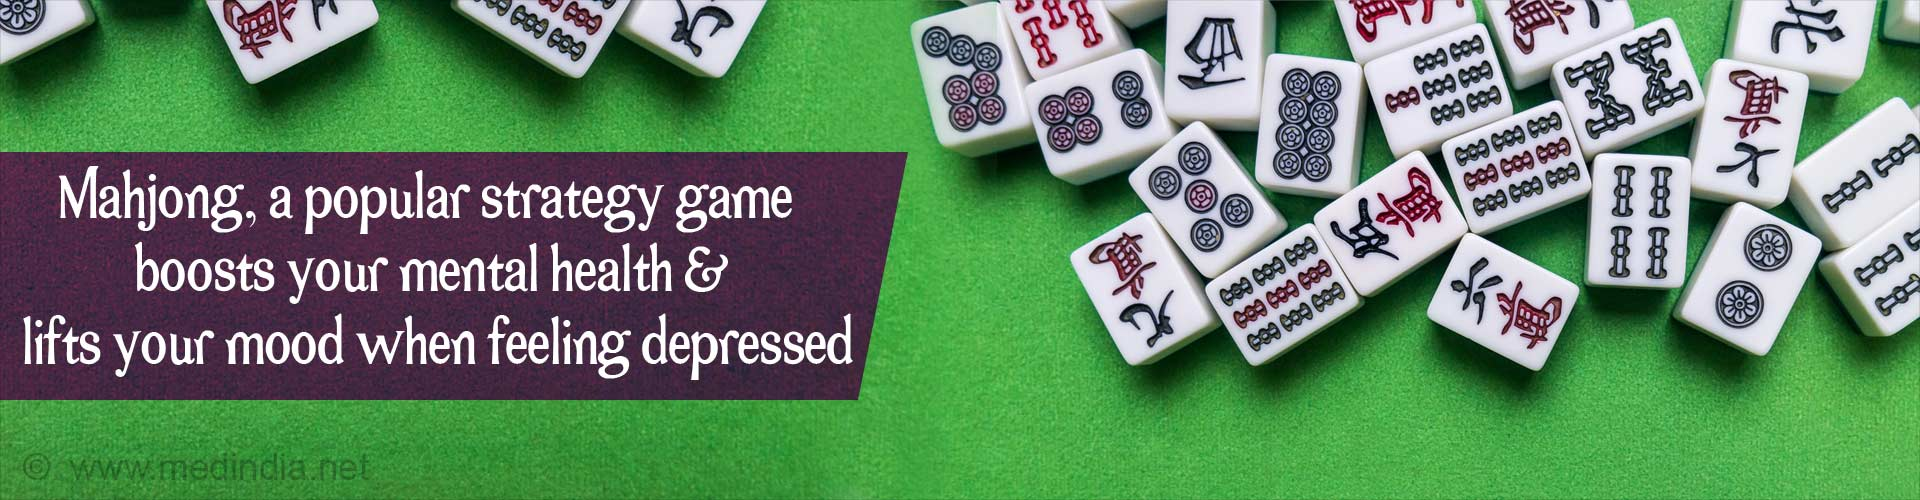 Playing Mahjong can Help You Cope with Depression